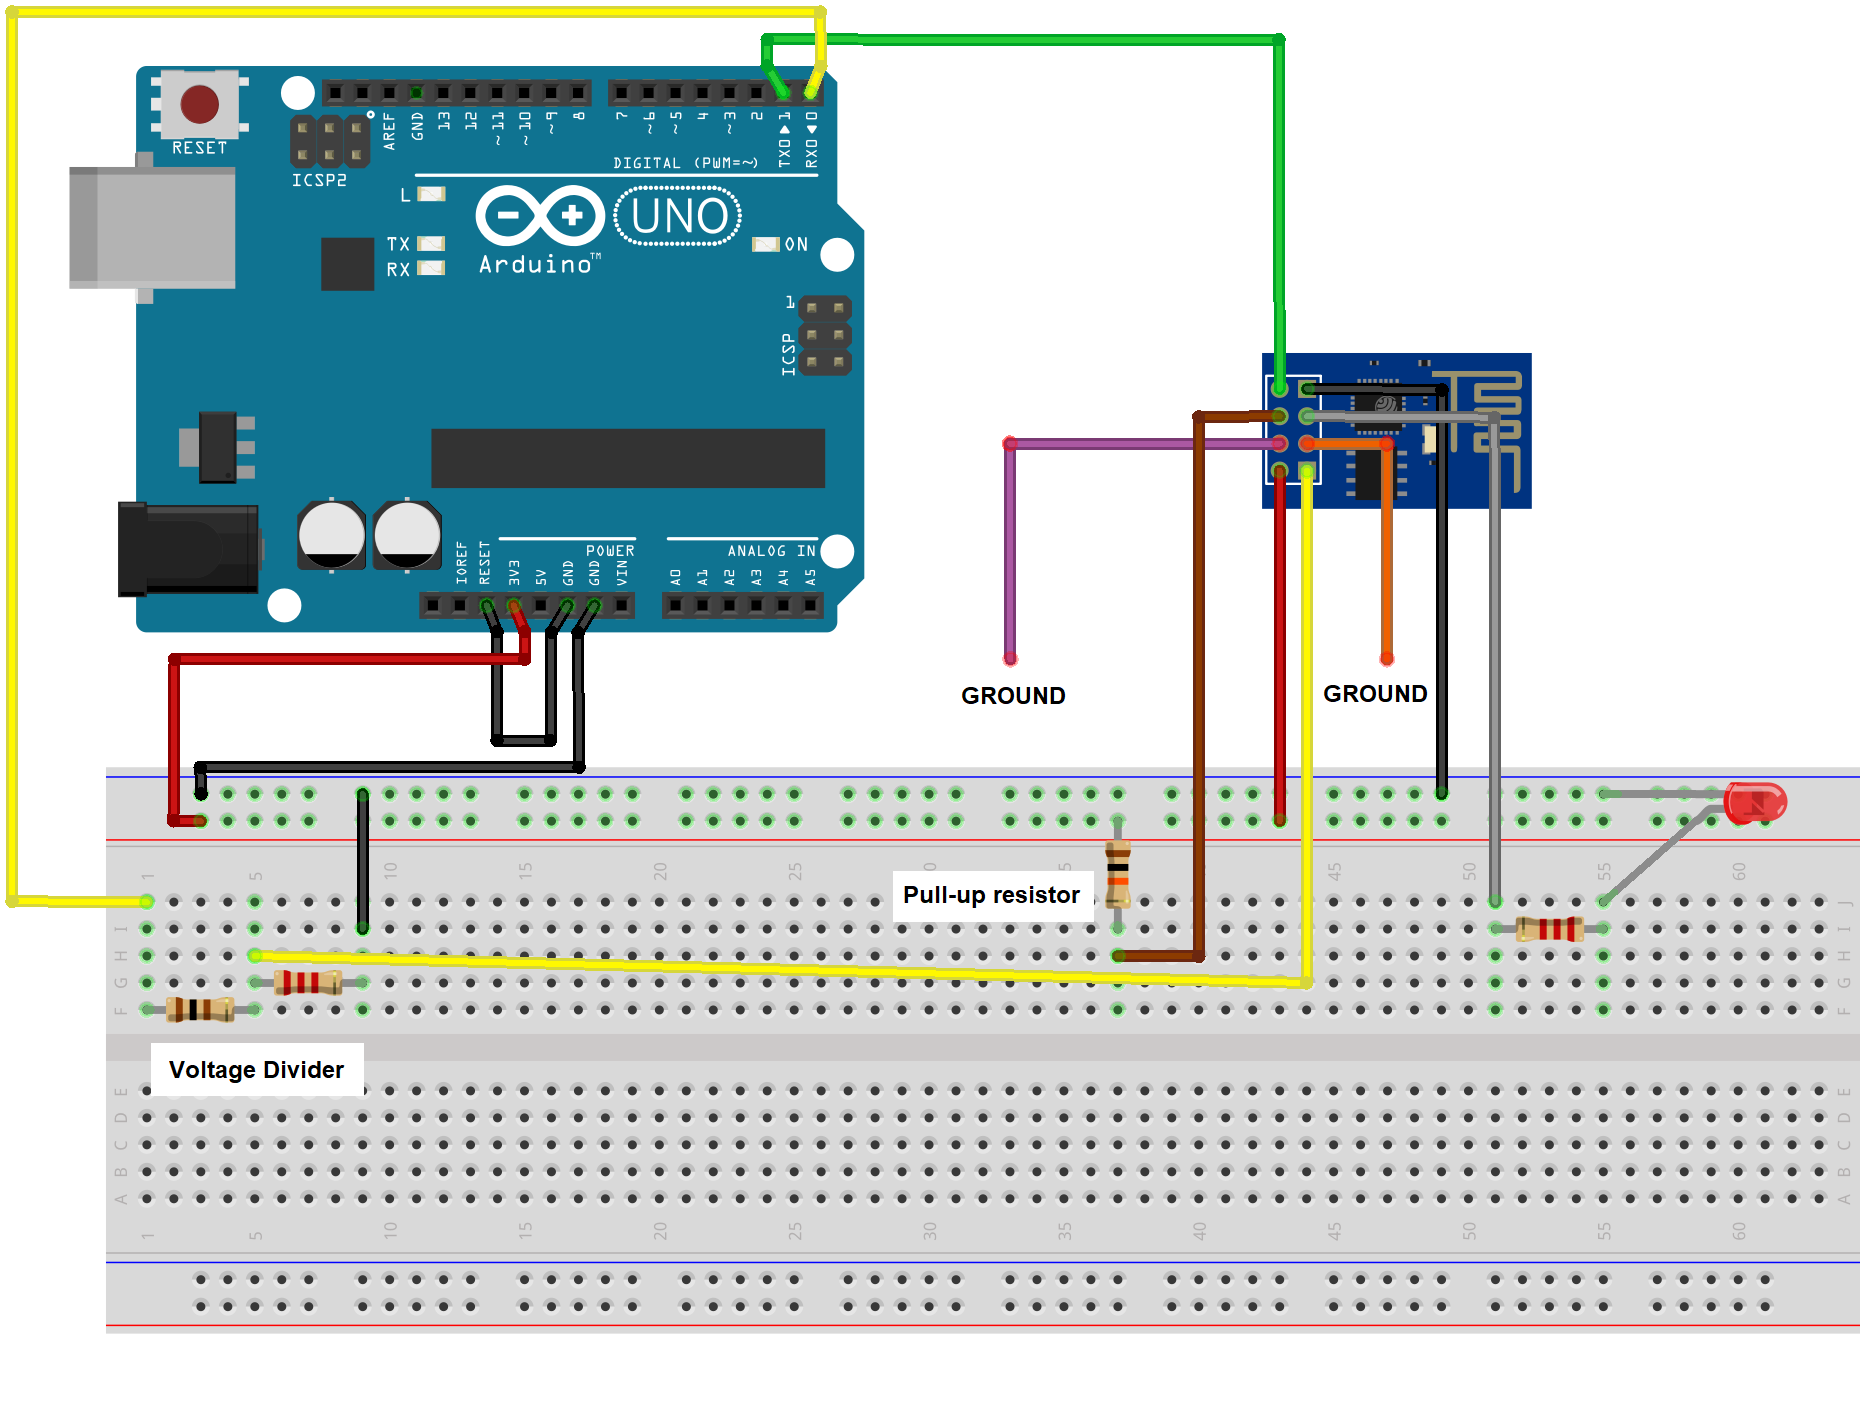 How to Control the Arduino's GPIO Pins from a Webpage